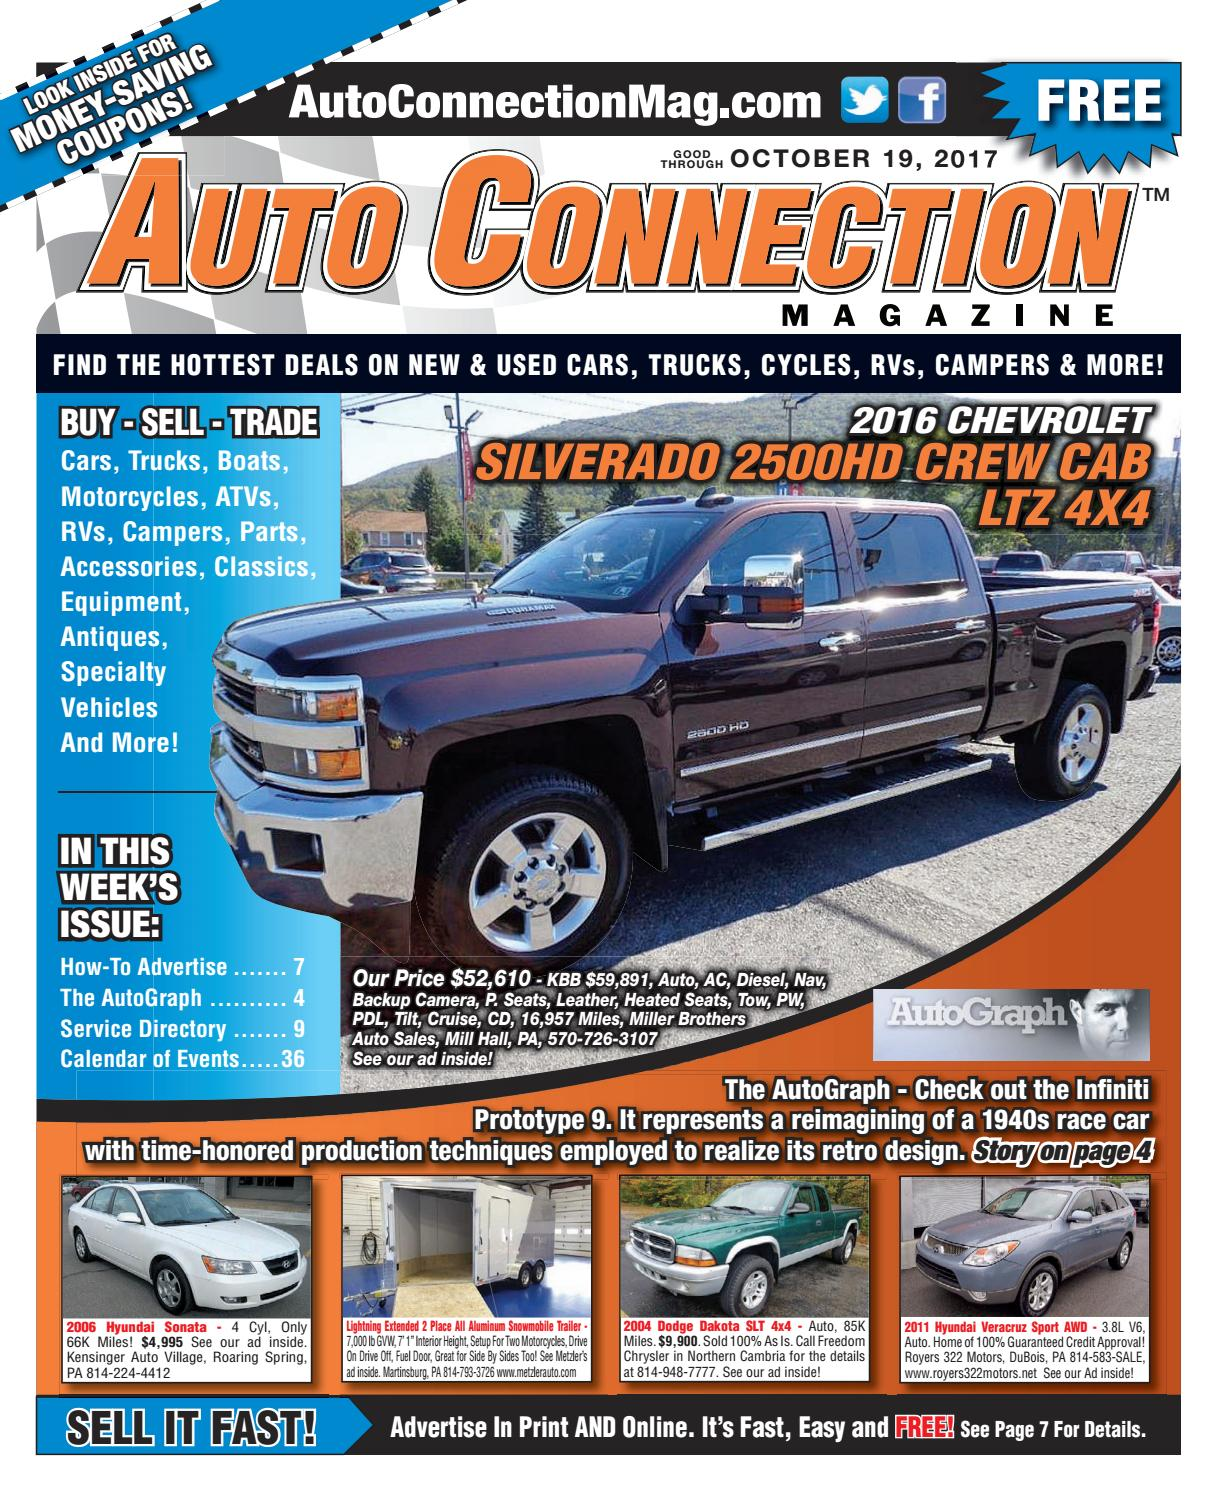 10 19 17 Auto Connection Magazine By Issuu 0 Dodge Dakota Custom Fit Vehicle Wiring Tow Ready